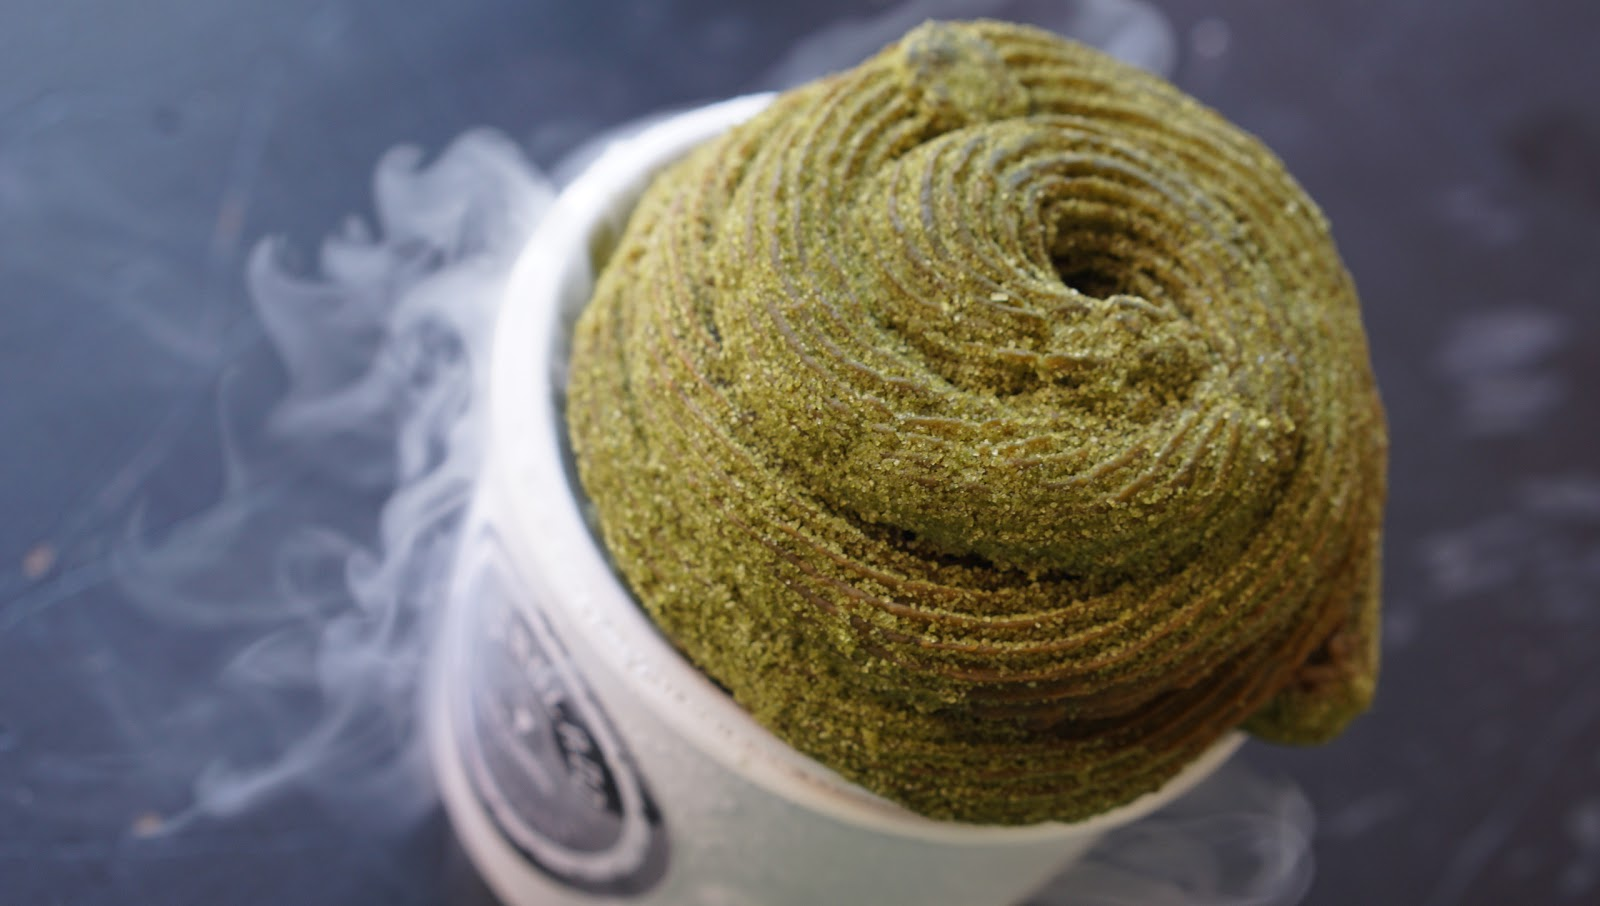 Giveaway | Matcha Lover? The Matcha Churro Bowl By Nitrolado Is A Must-Try!